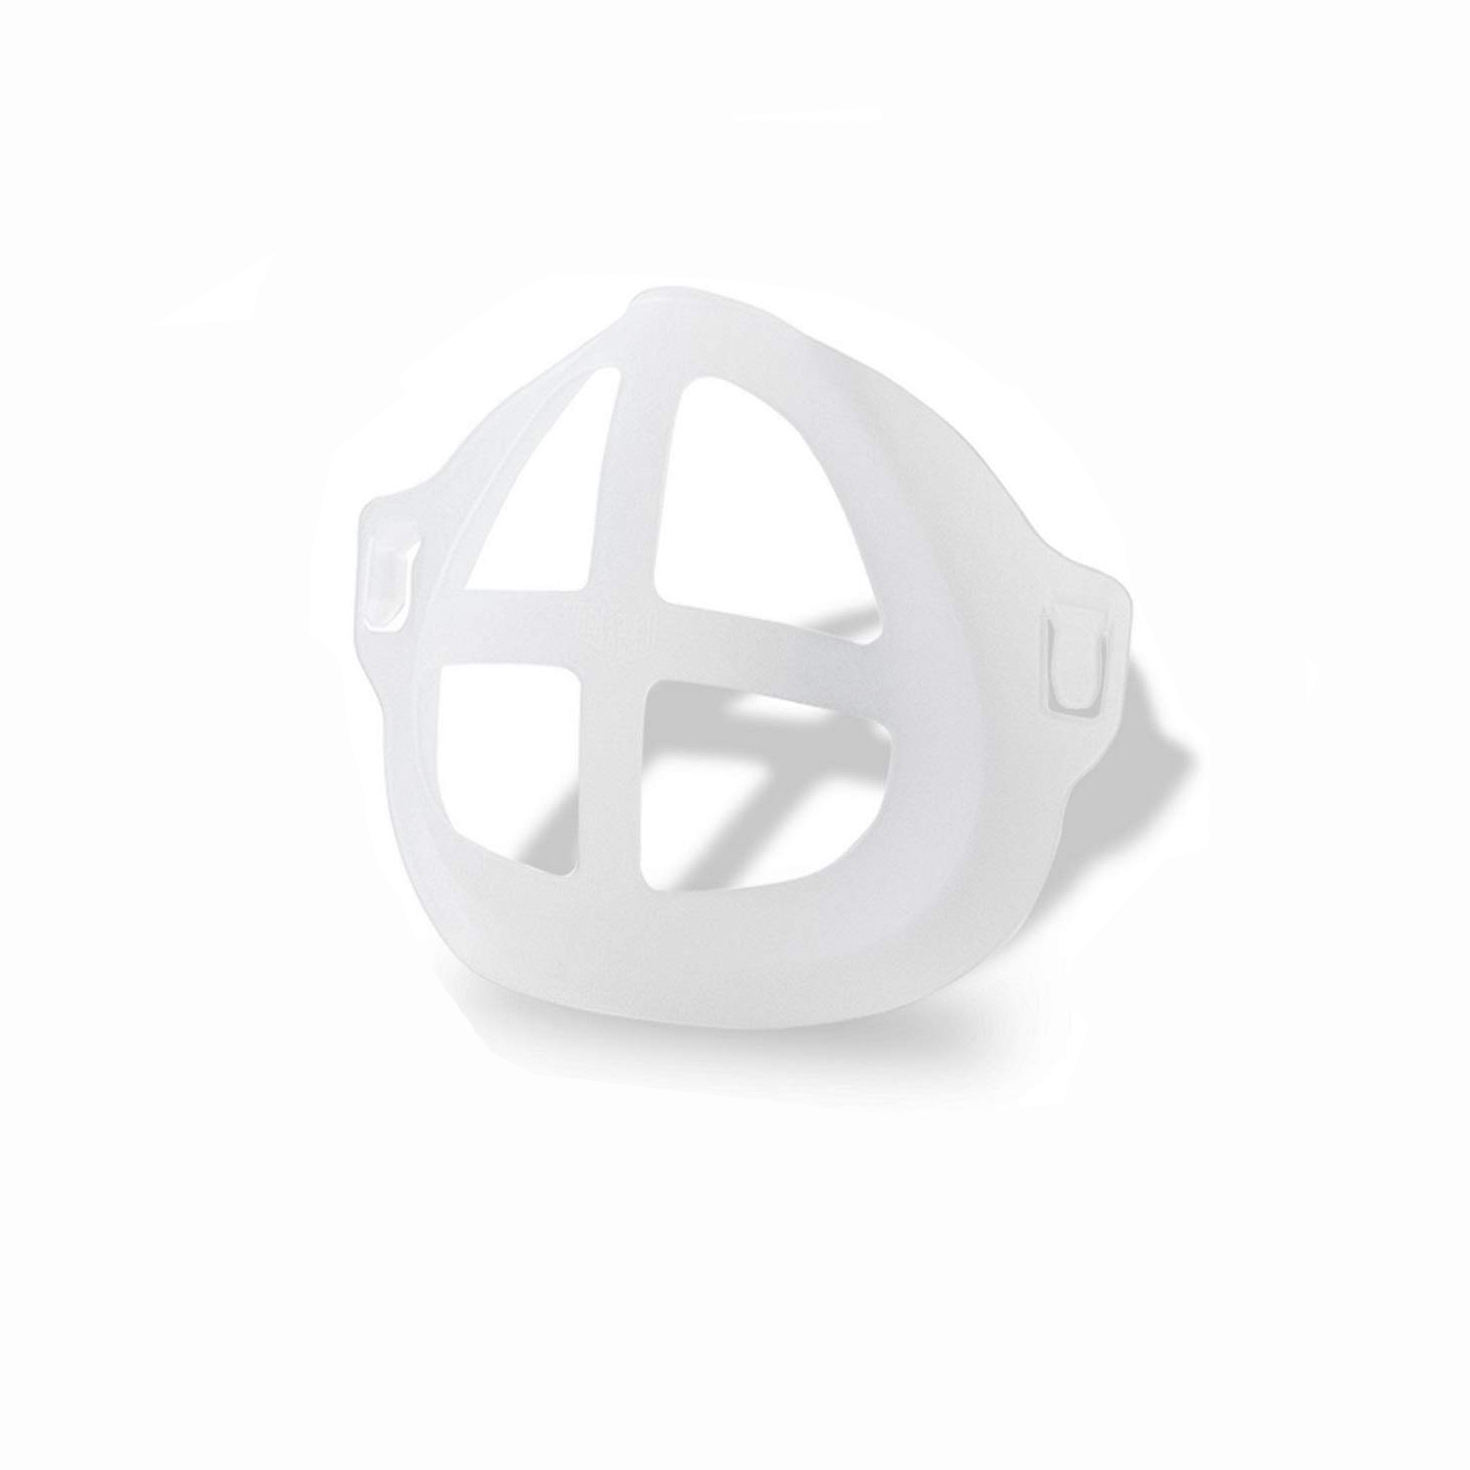 Soft Silicone Plastic Face Masking Holder 3D Face Masking Bracket For Comfortable Breathing